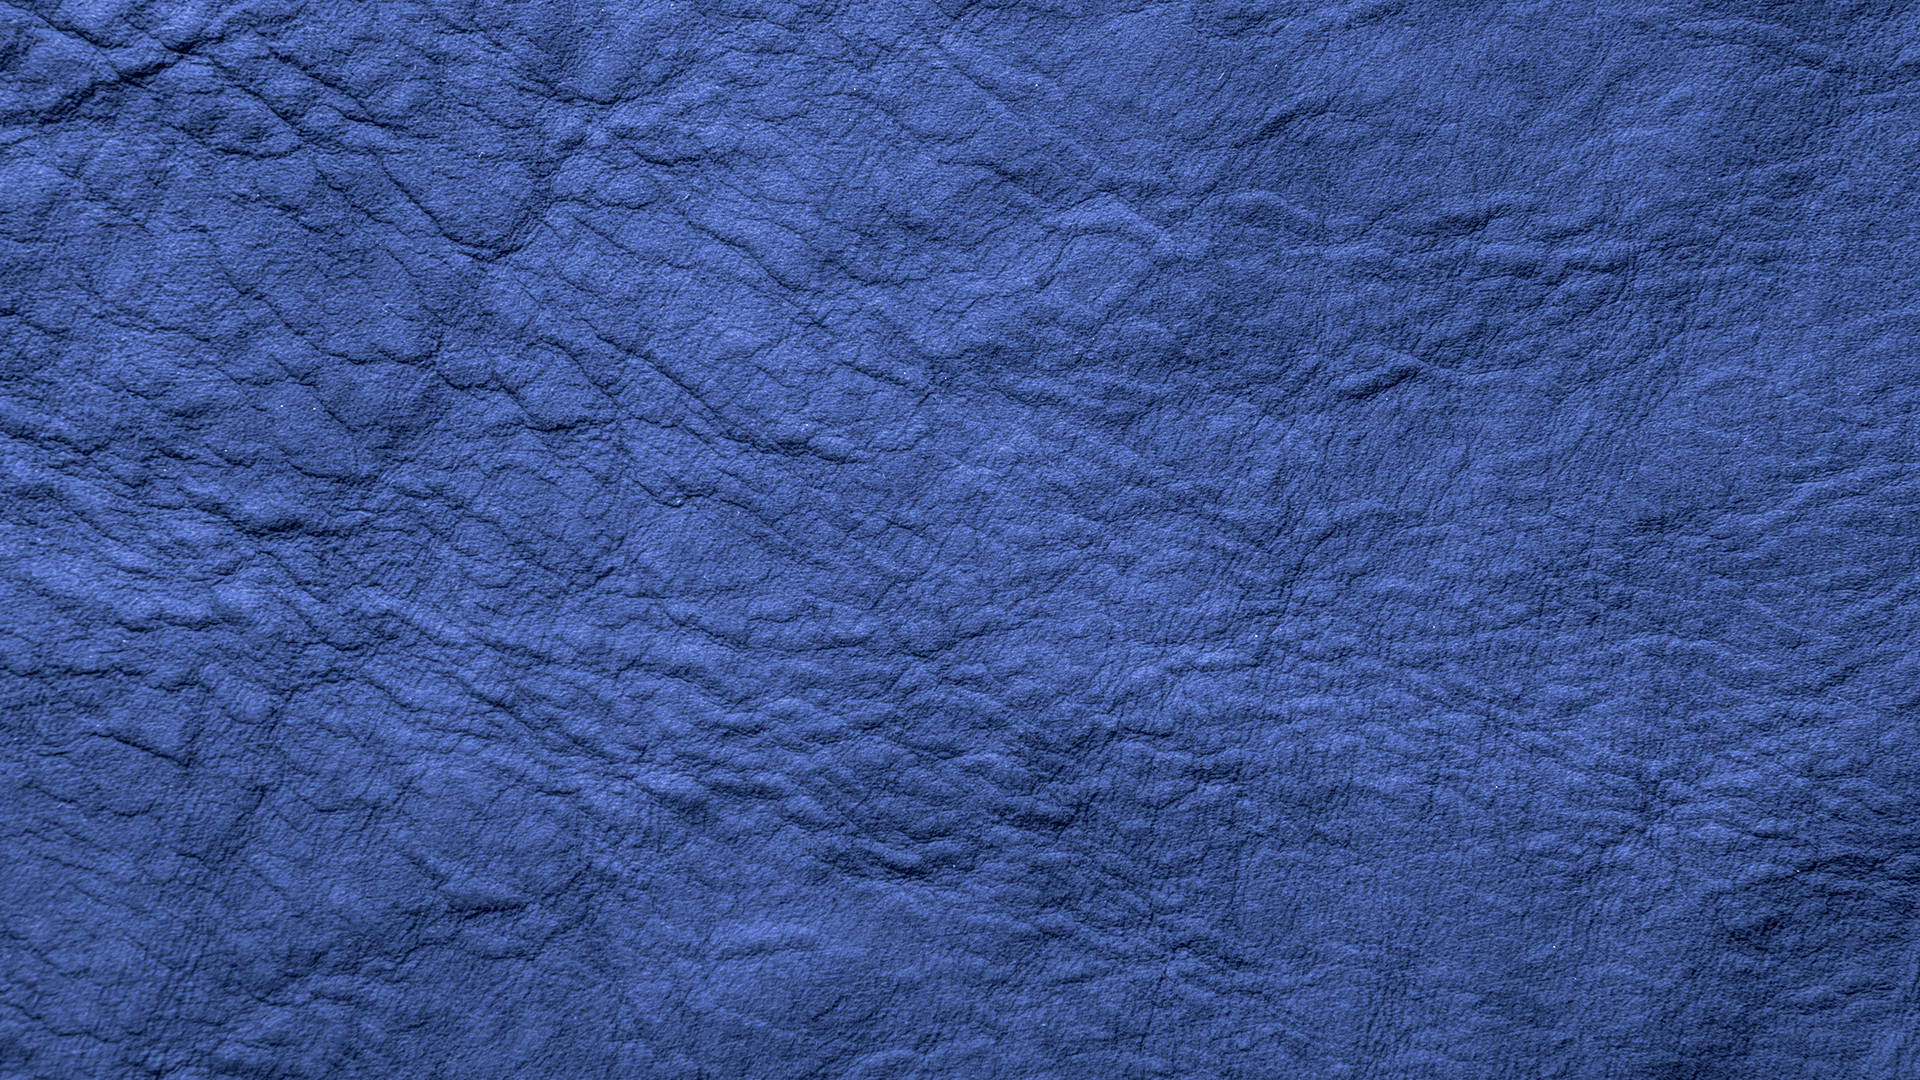 Blue Wrinkled Leather Background HD